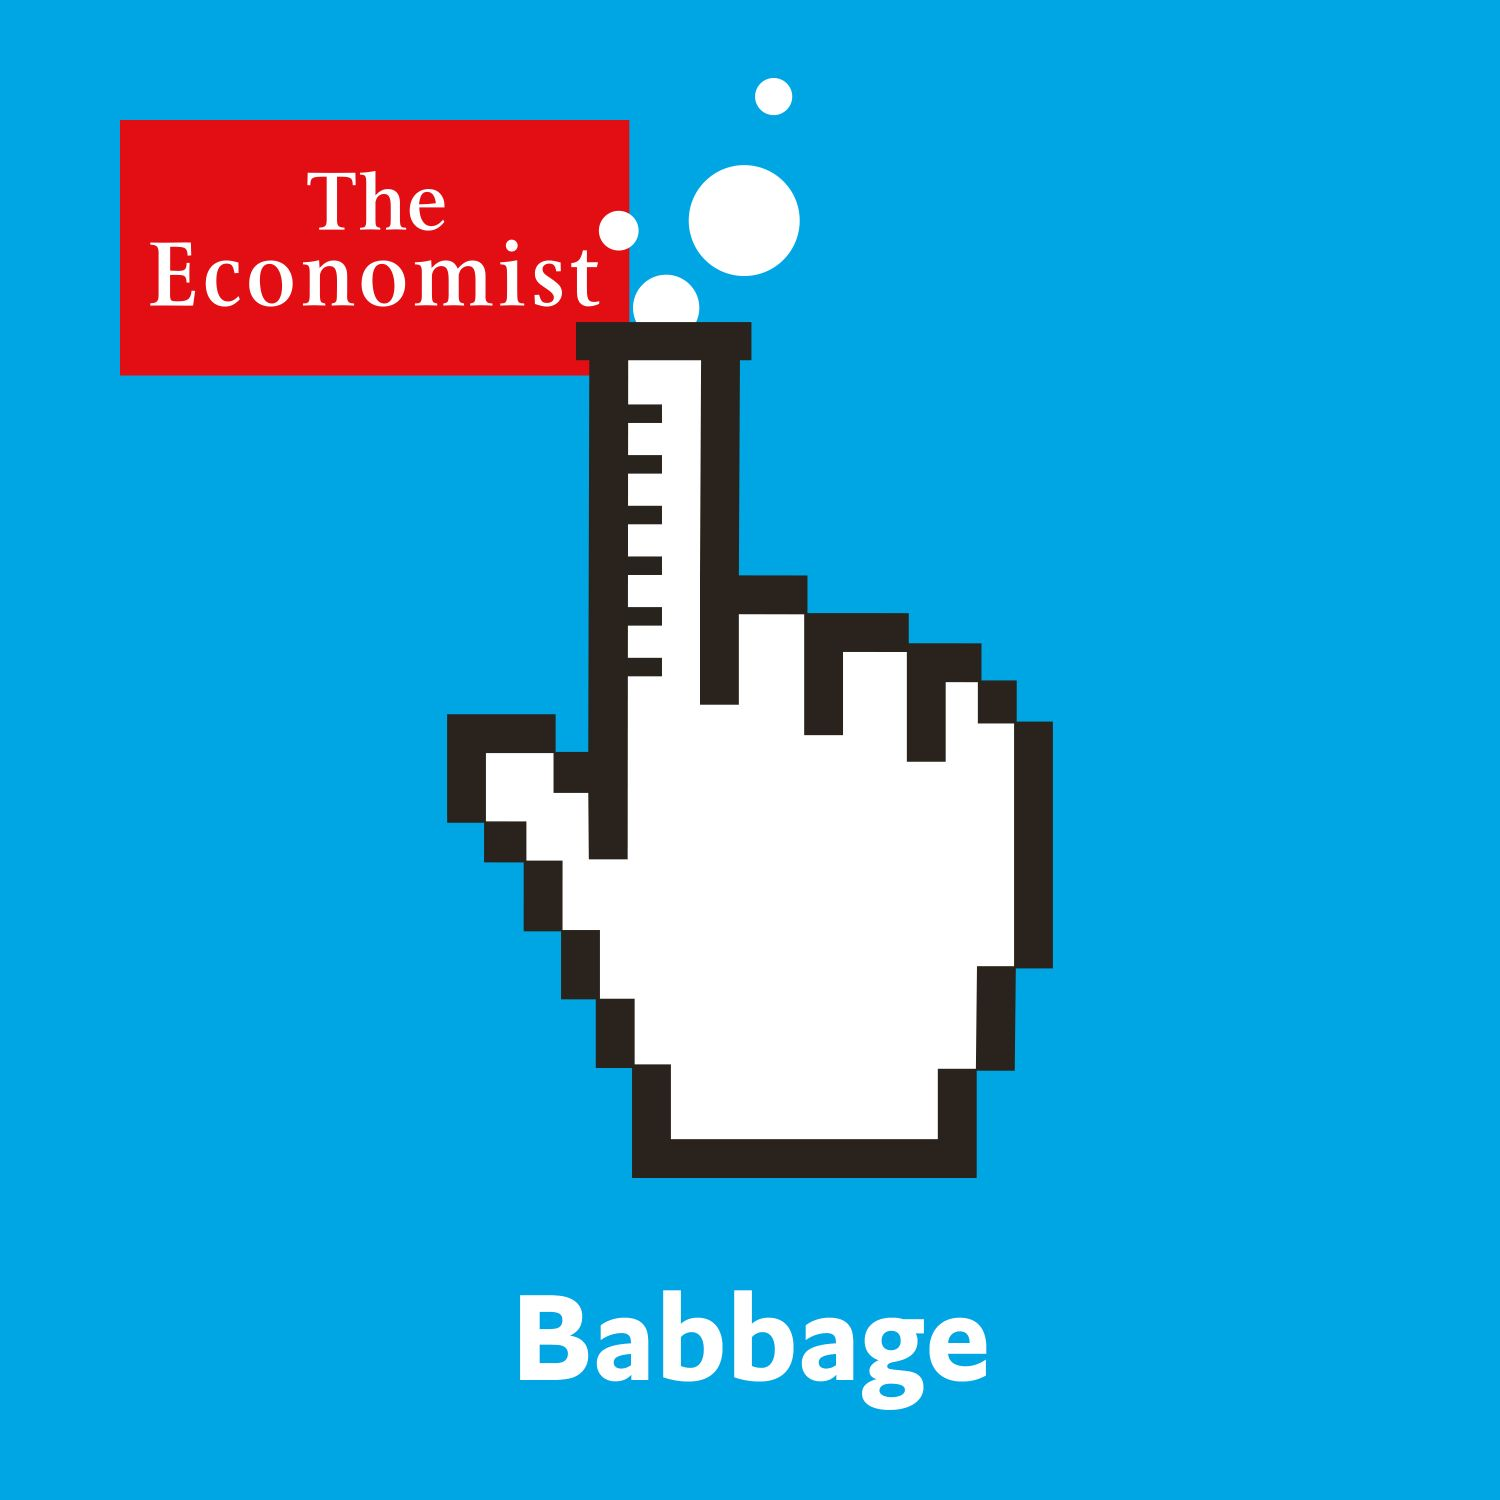 Babbage: Up in smoke